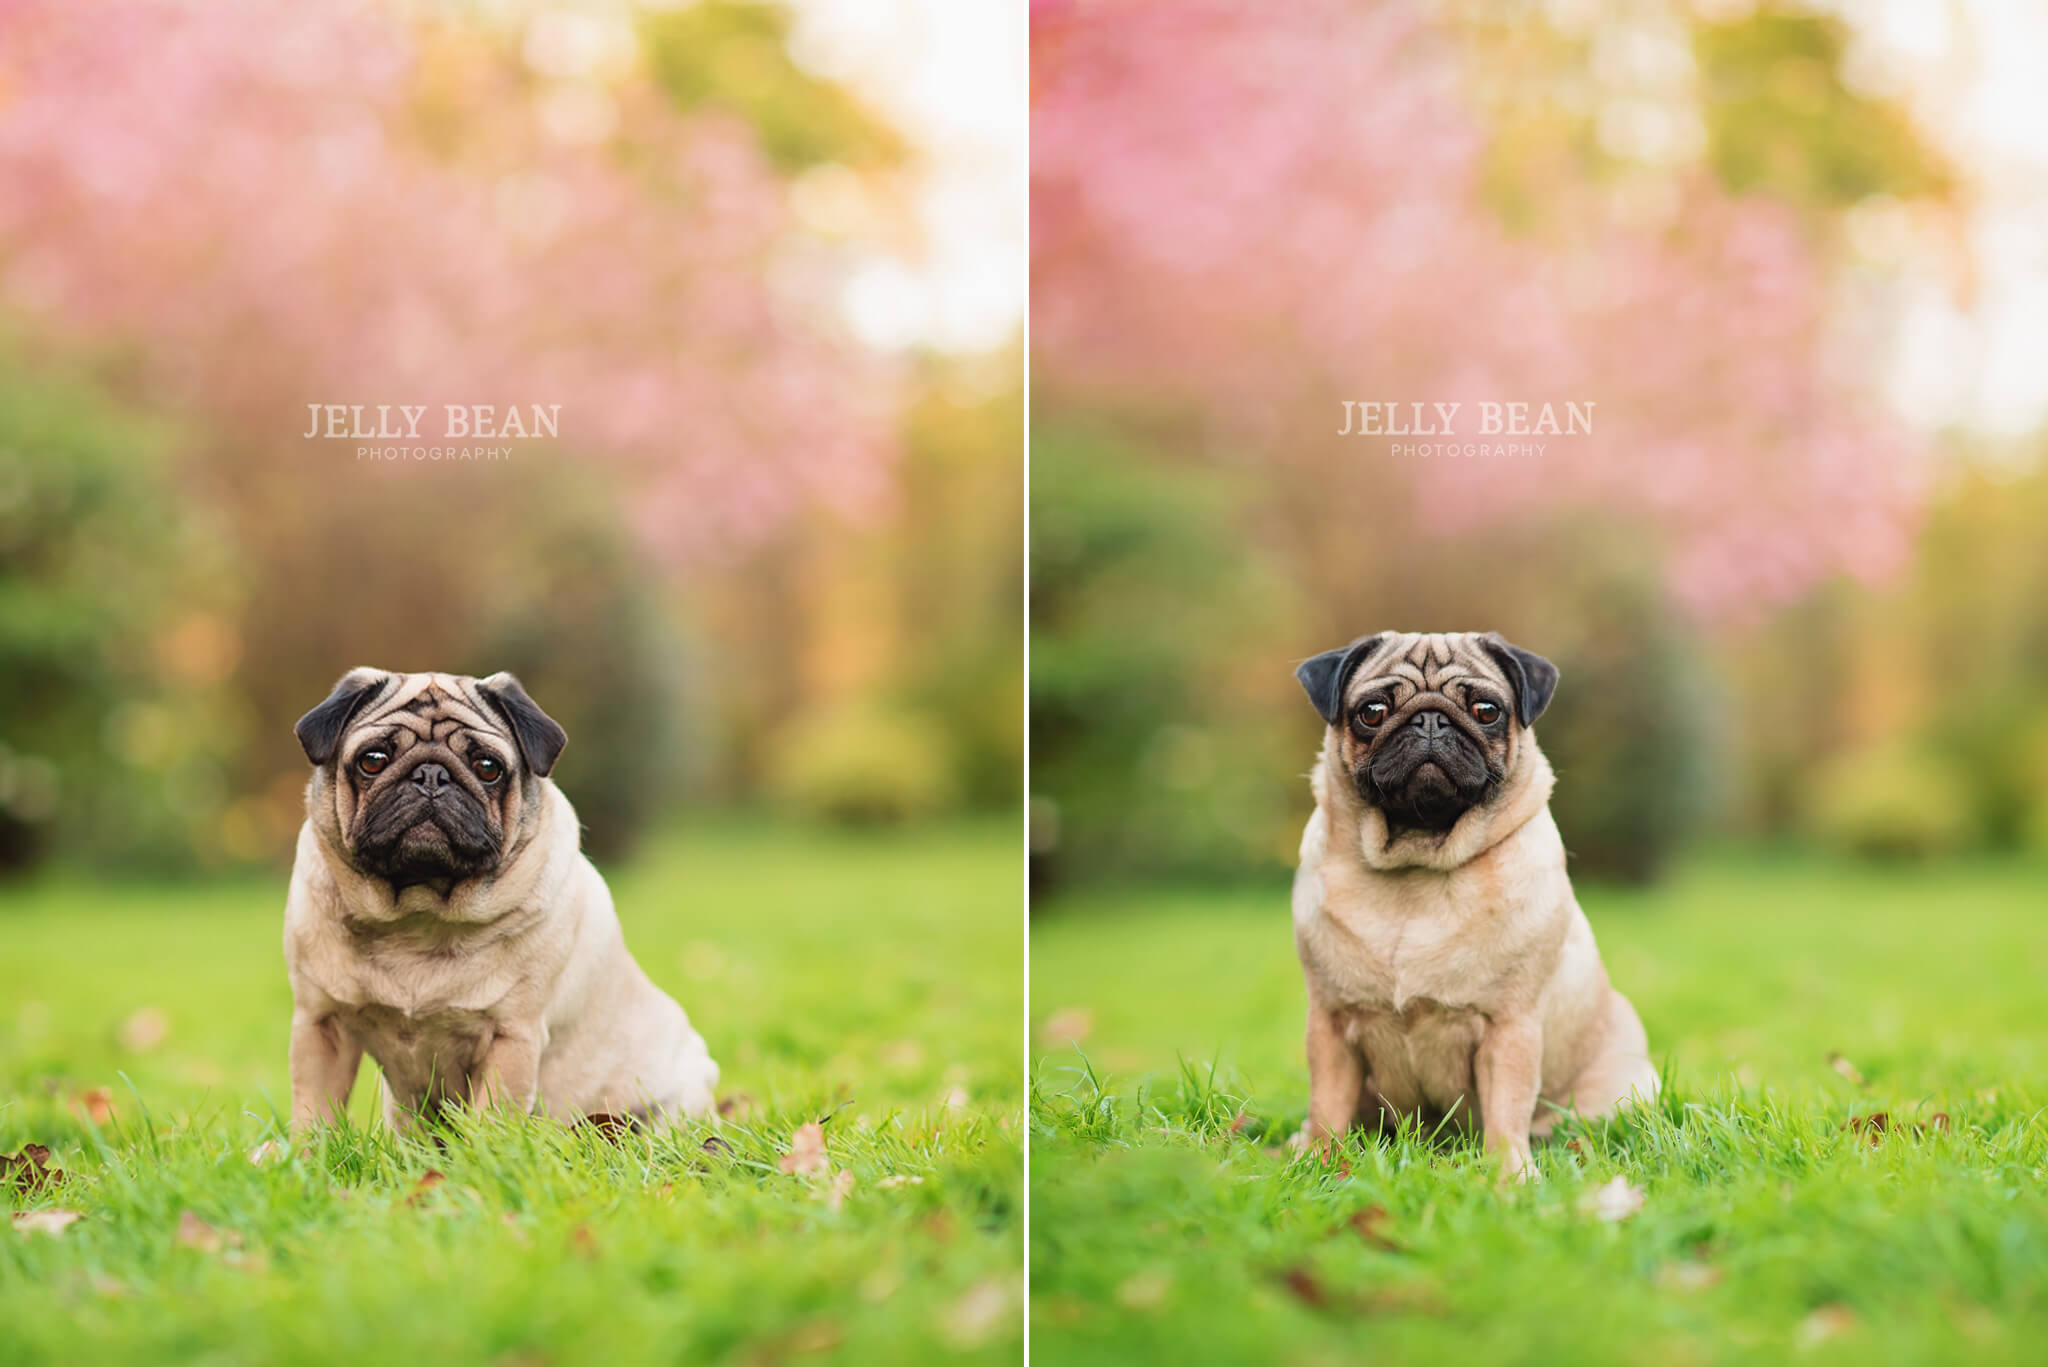 Two pugs sitting in grass